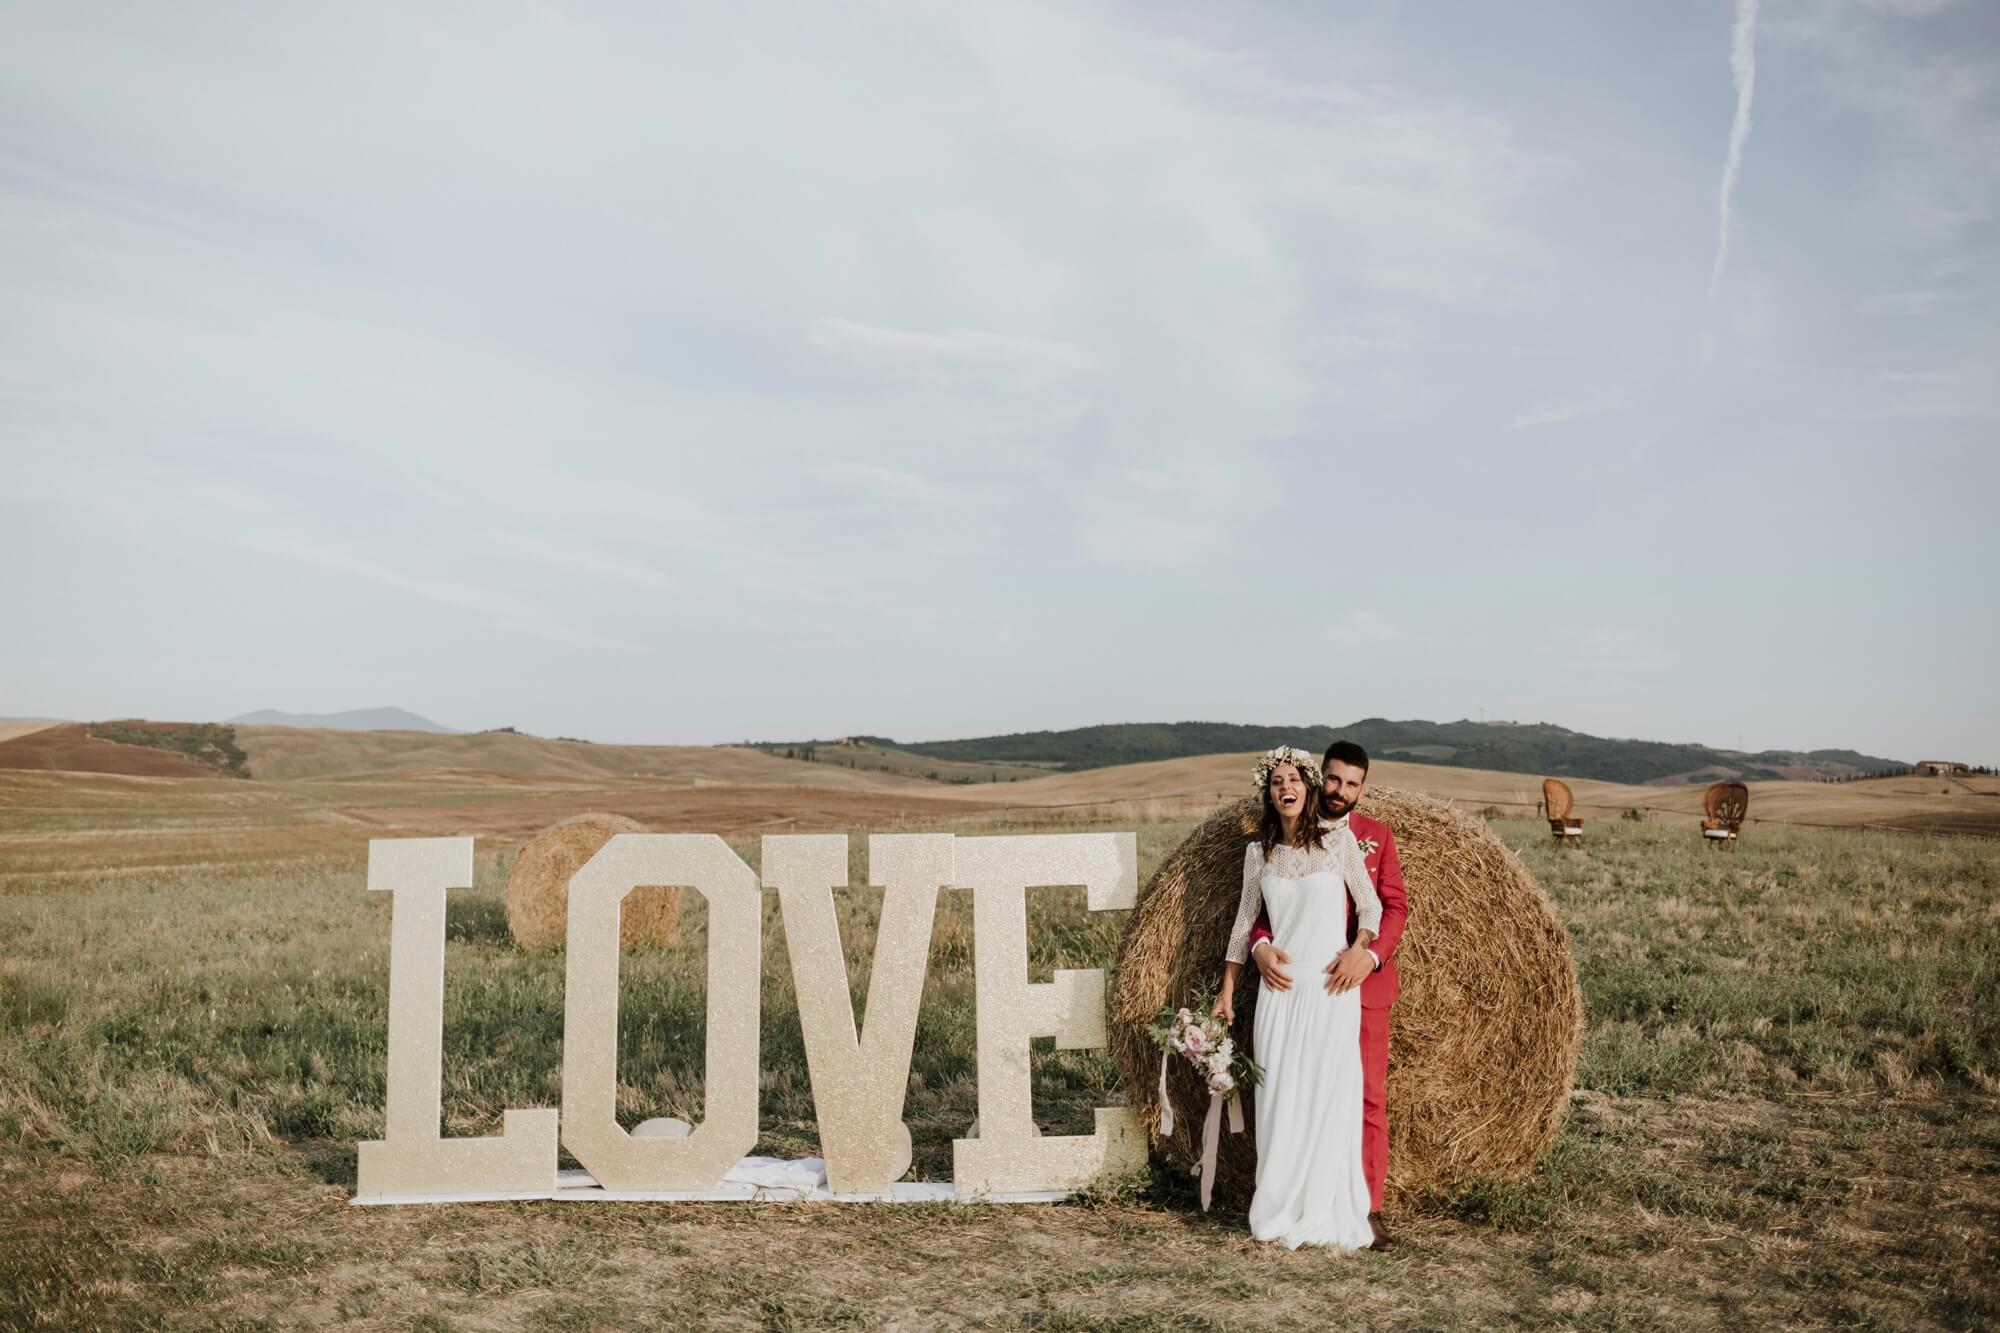 Wedding Photography service for destination wedding in Tuscany. Giulia Alessandri Wedding Planner, Wedding Design & Wedding Coordination in Tuscany.